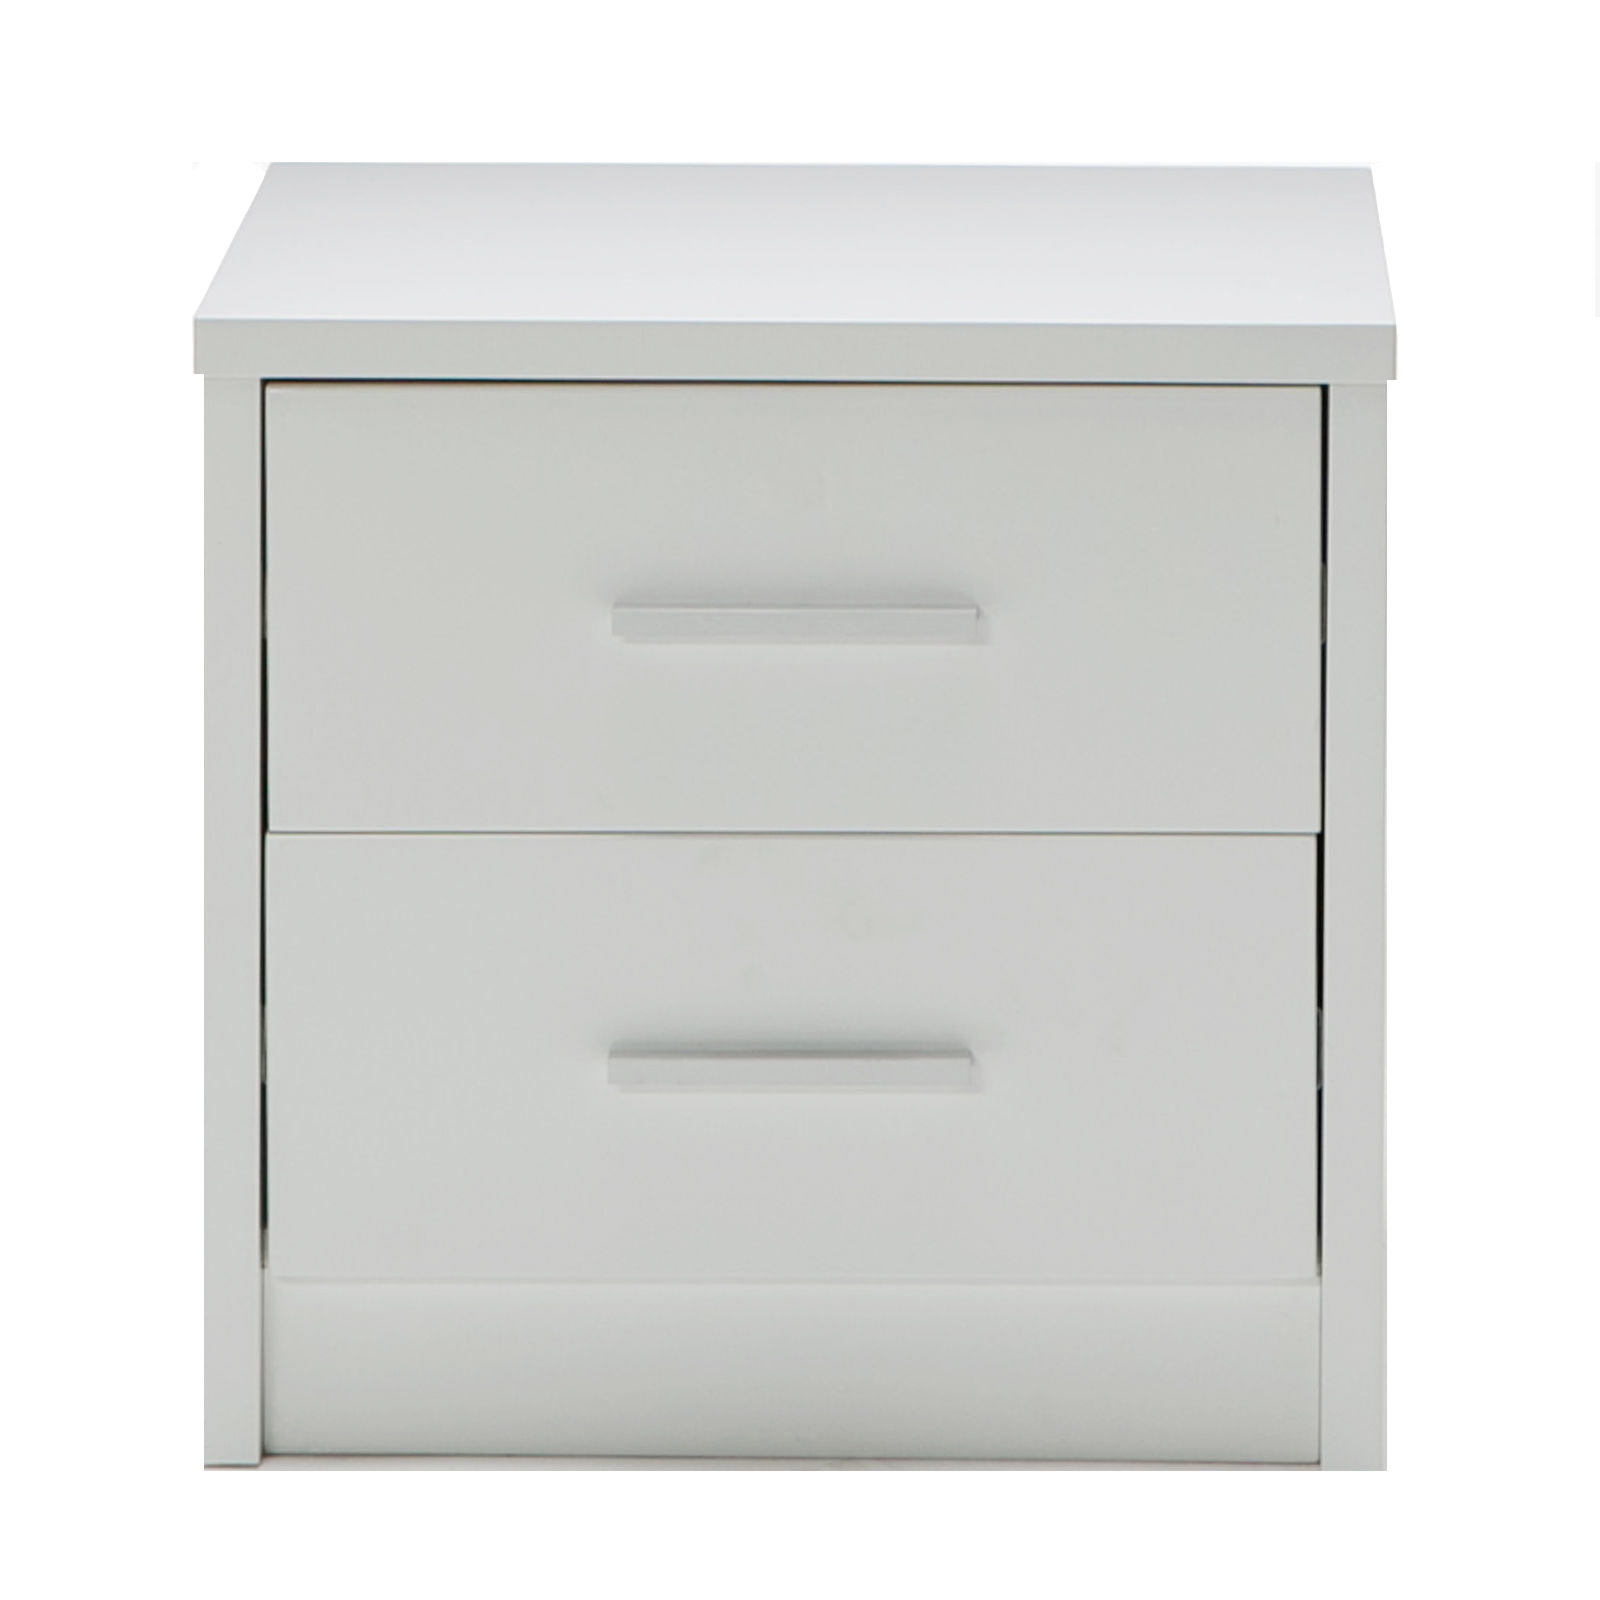 Venus high gloss mdf modern bedside table nightstand with storage venus brand new white high gloss bedside table night stand storage drawers watchthetrailerfo